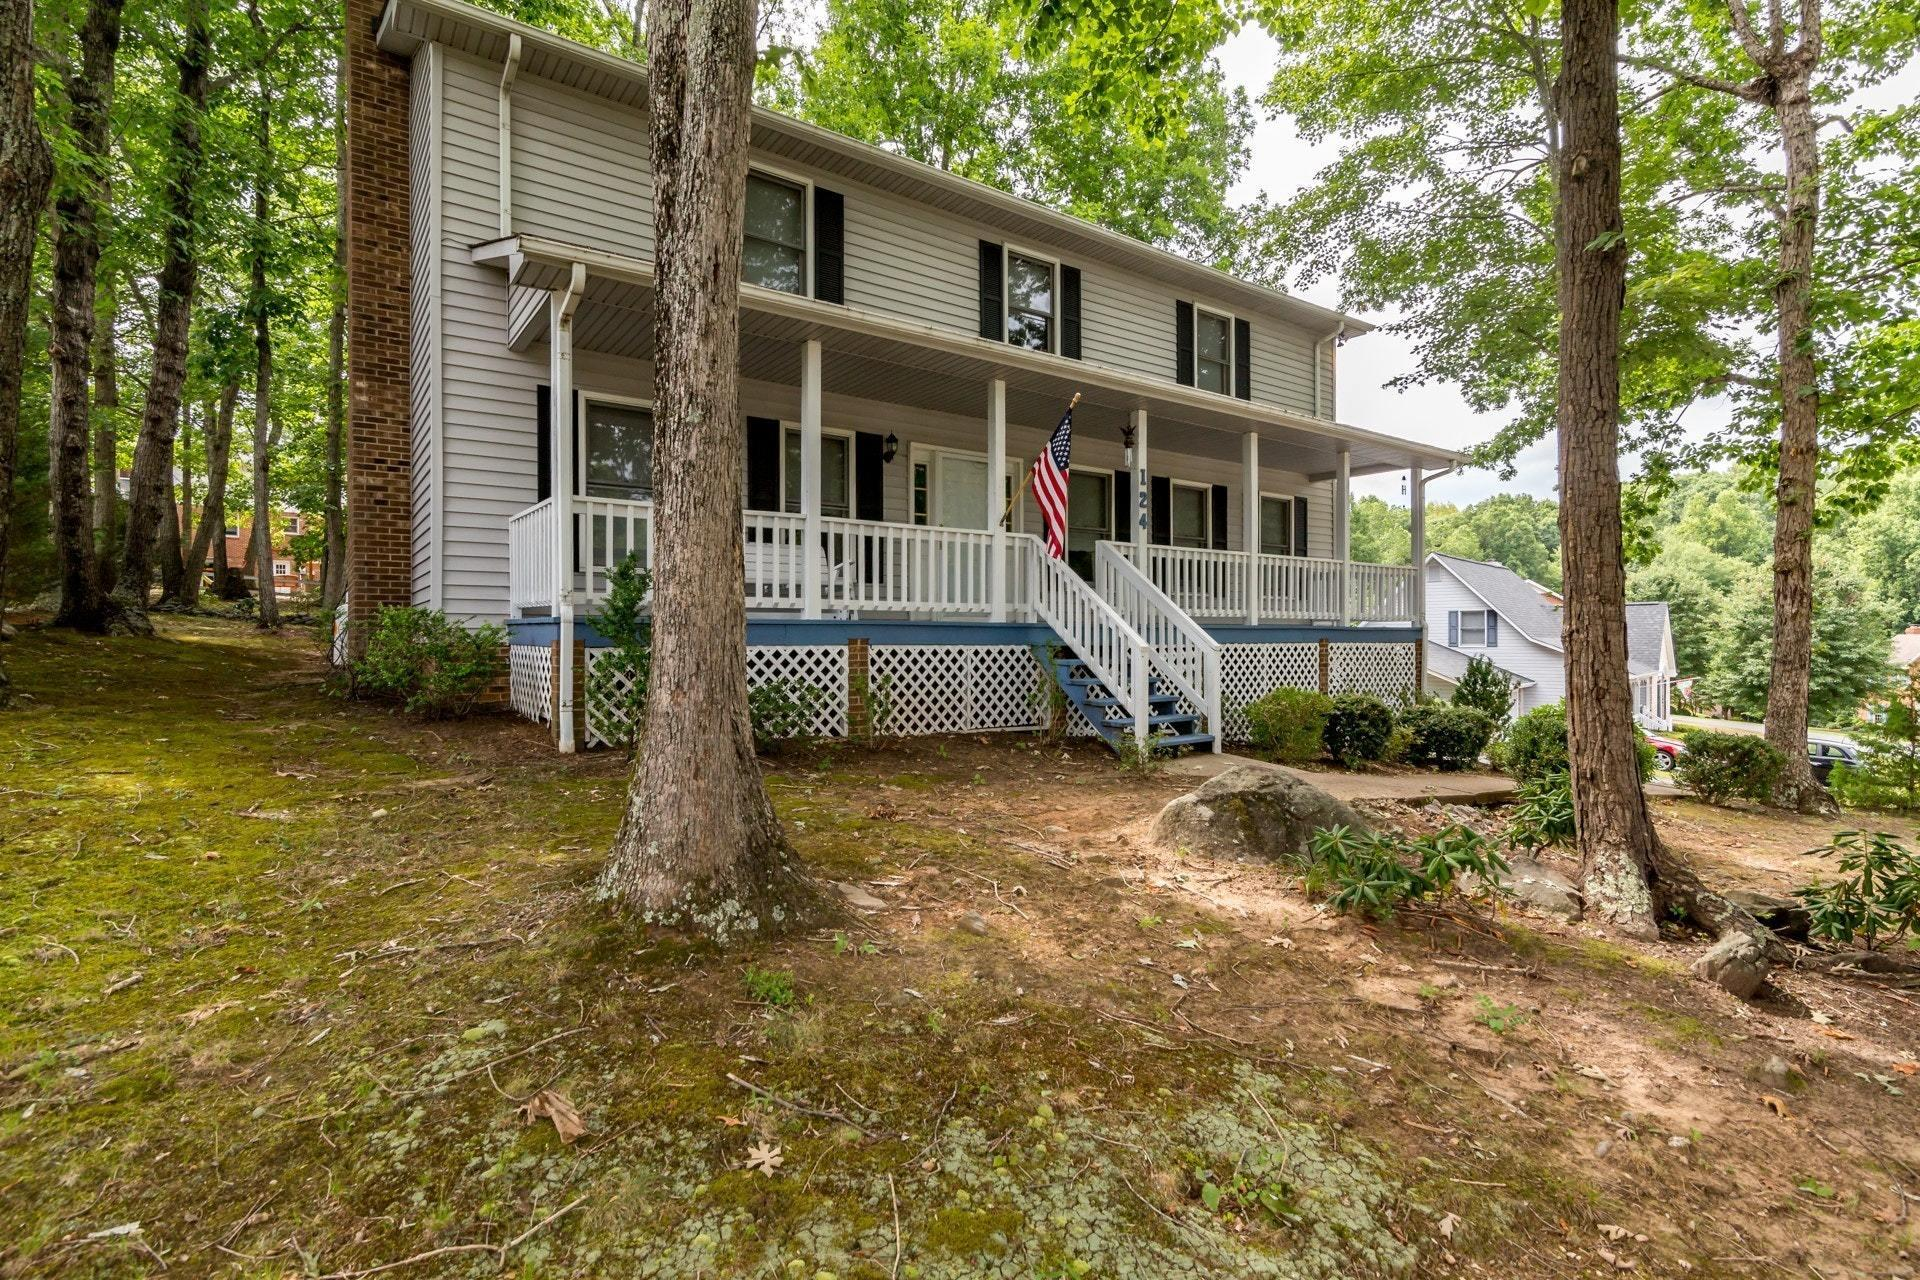 Residential for Sale at 124 Breezewood Rd 124 Breezewood Rd Collinsville, Virginia 24078 United States